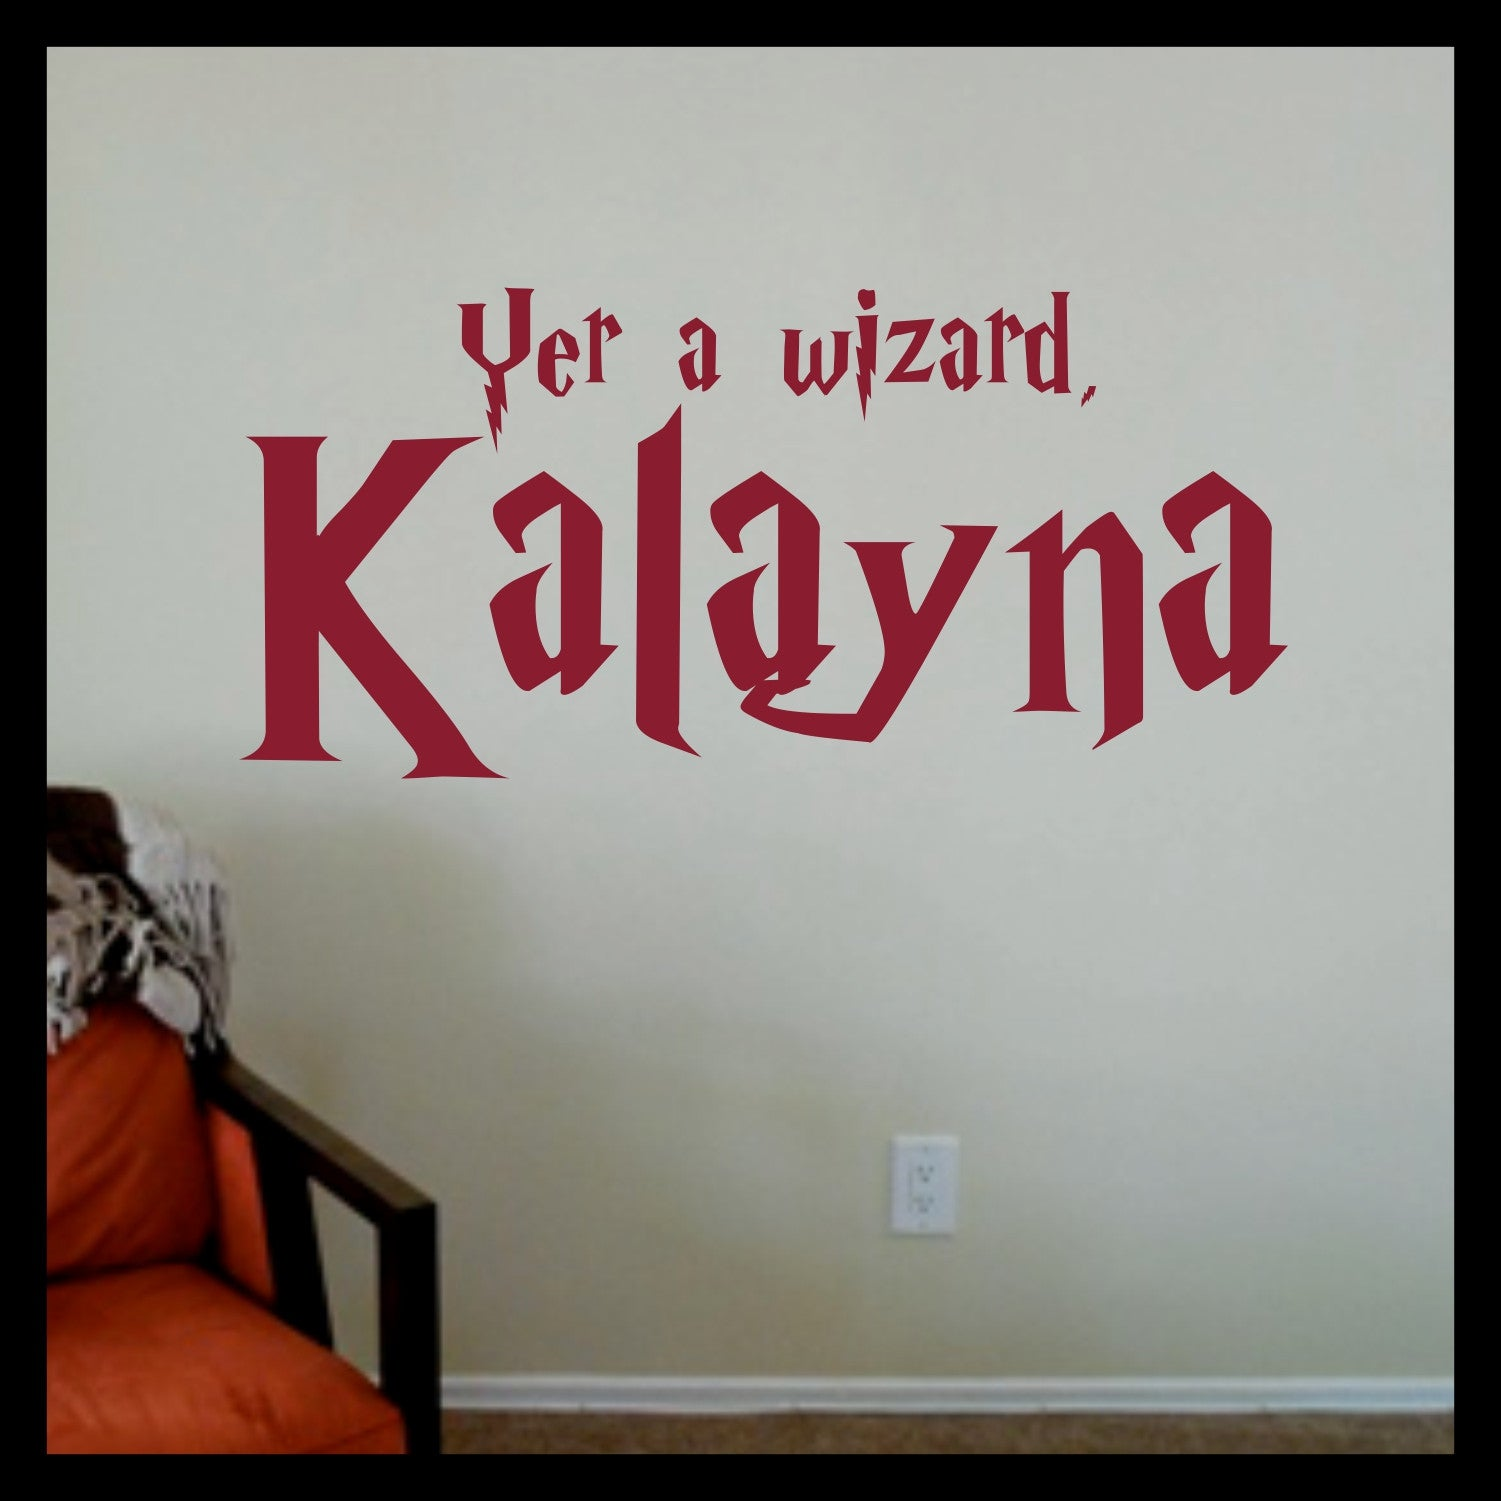 Personalized Yer a Wizard! Harry Potter-inspired Fan Art Vinyl Wall Decal